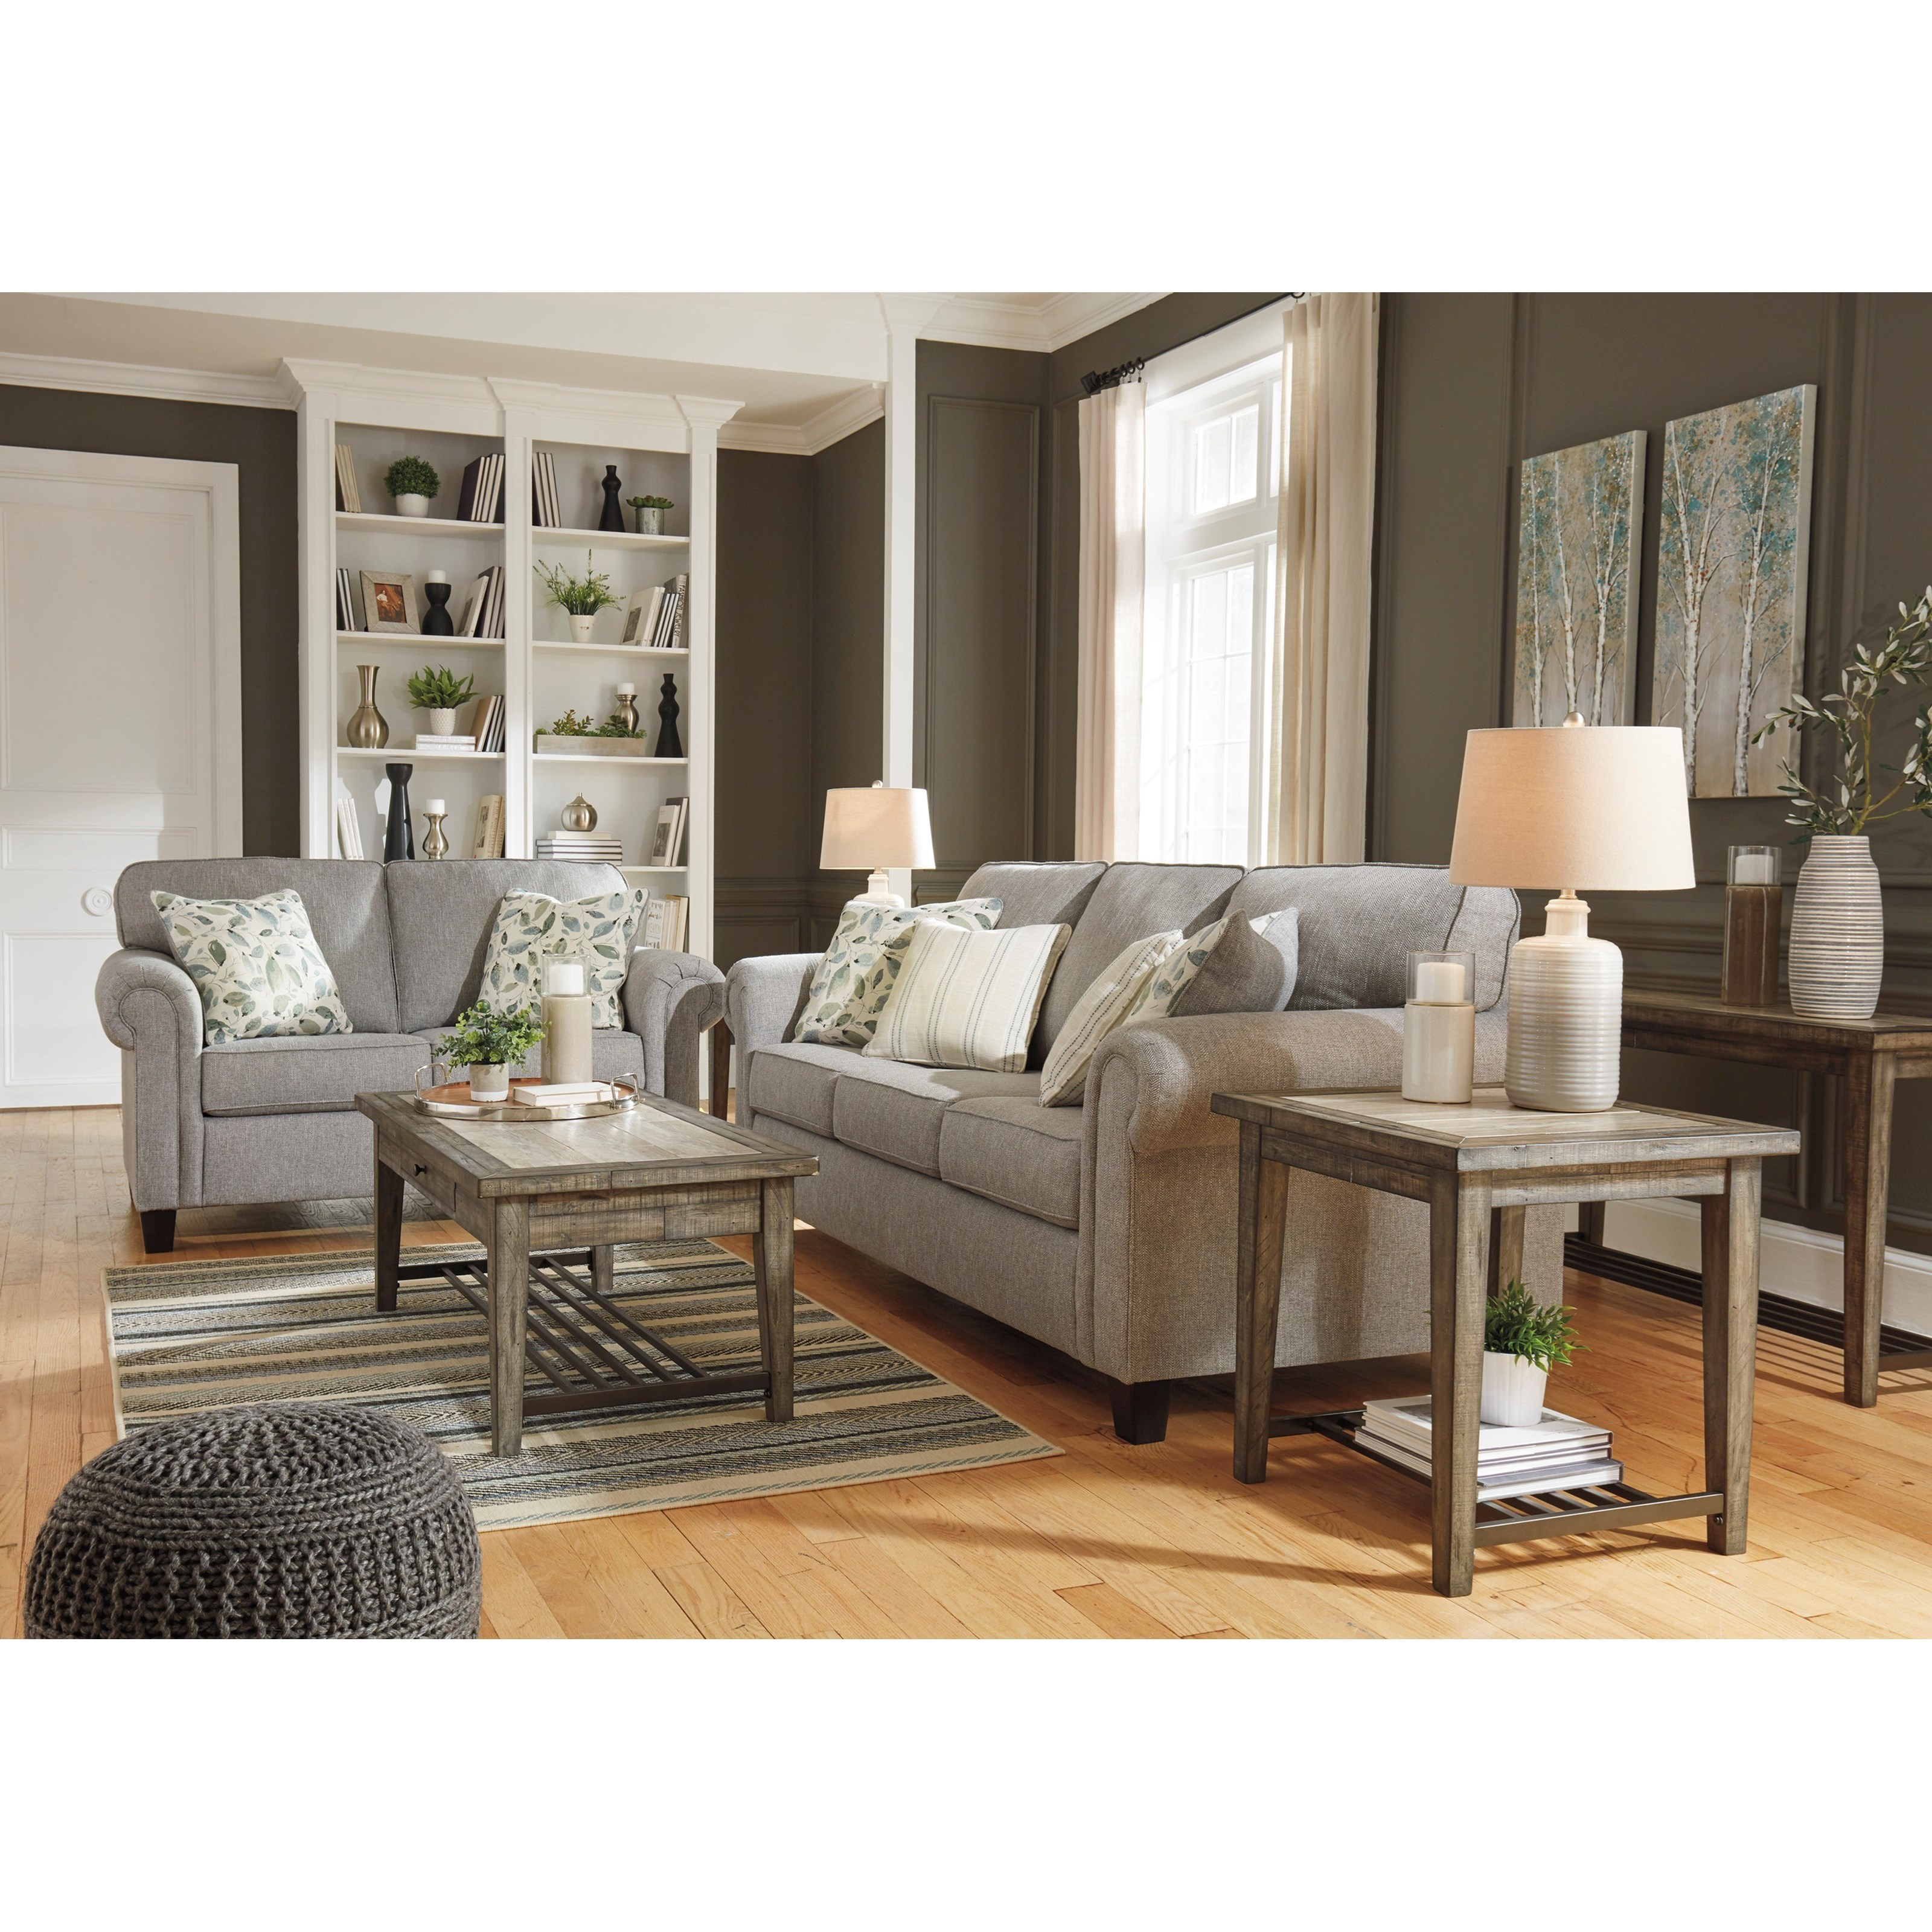 Alandari Stationary Living Room Group by Signature Design by Ashley at Lynn's Furniture & Mattress